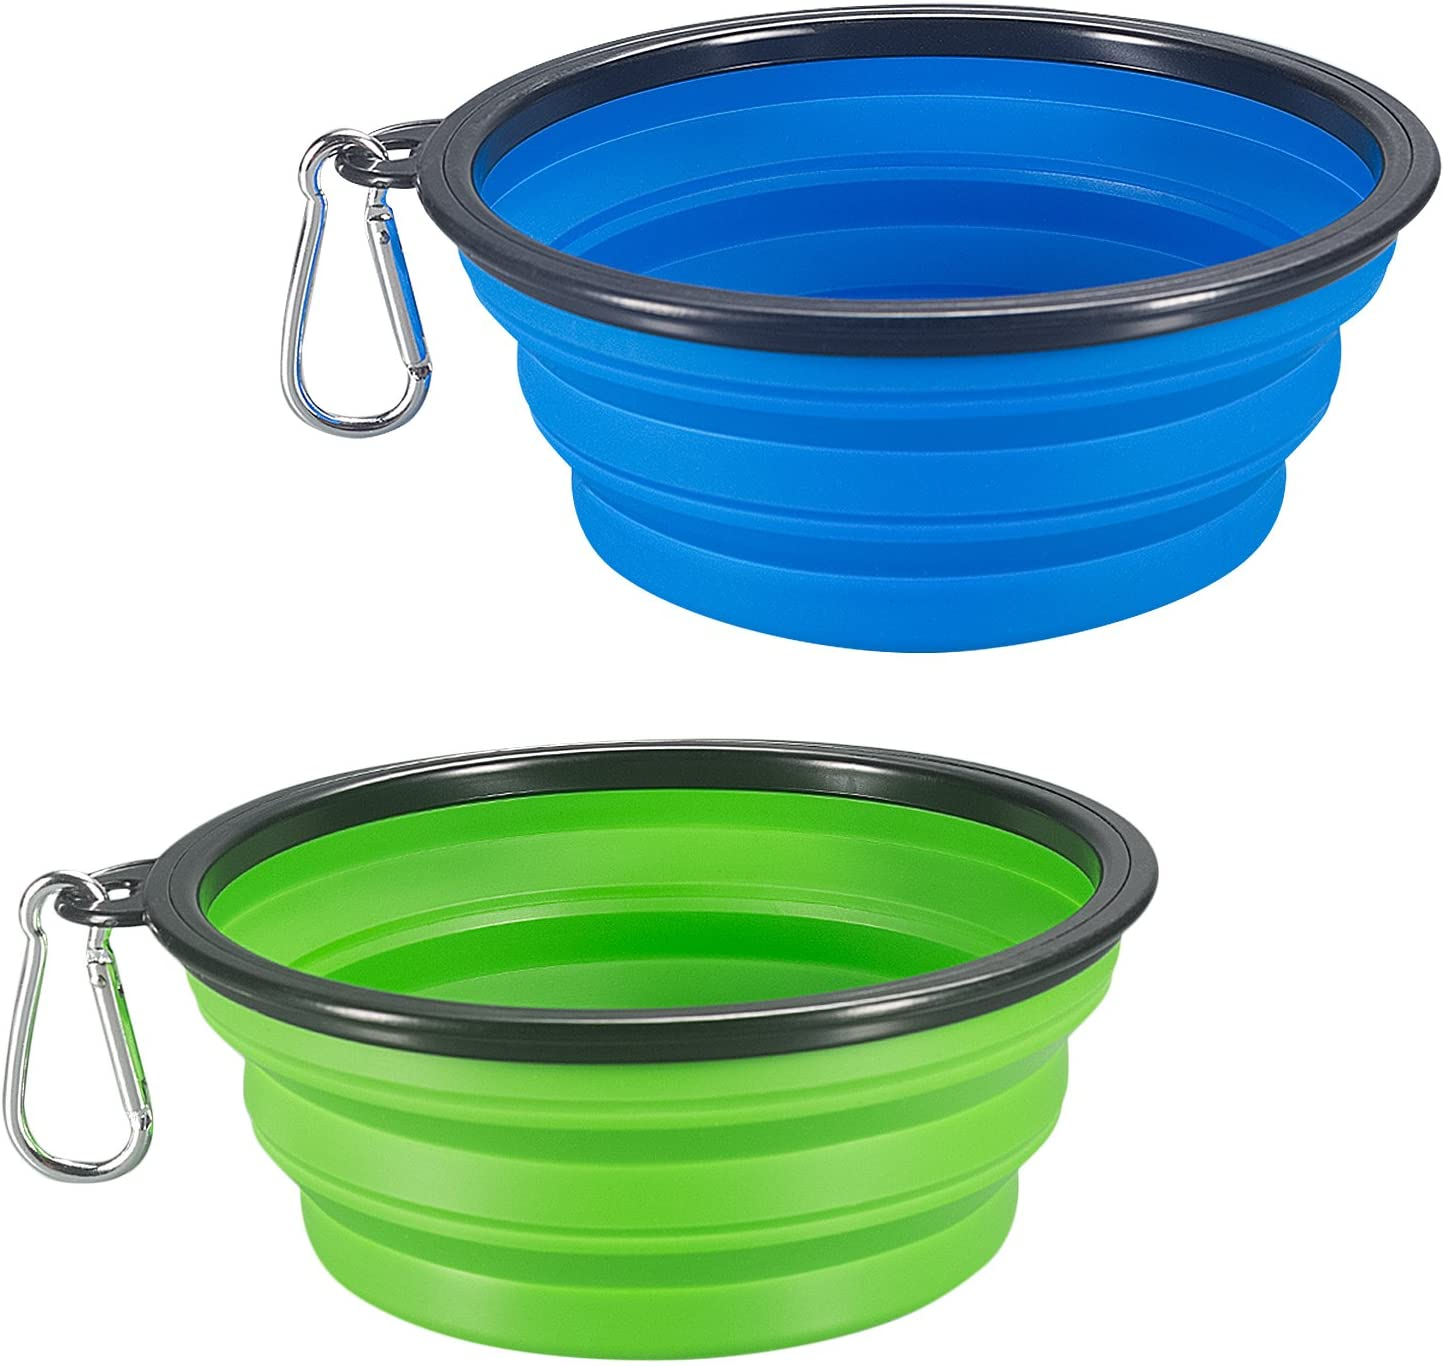 11. COMSUN Extra Large 2-Pack Collapsible Dog Bowl